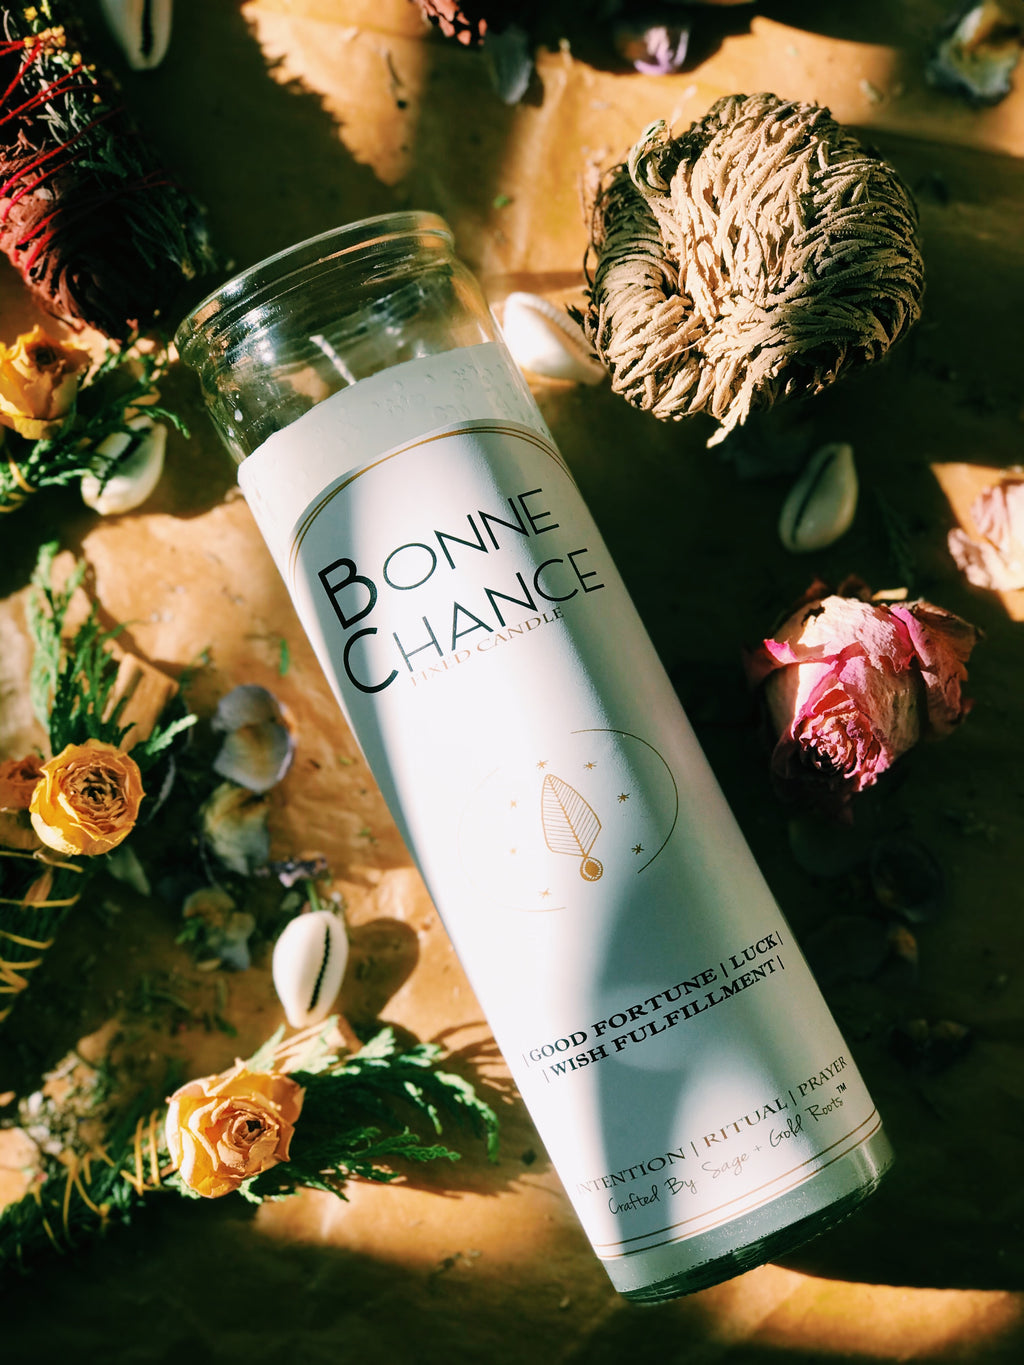 Bonne Chance | Good Fortune Conjure Fixed Candle